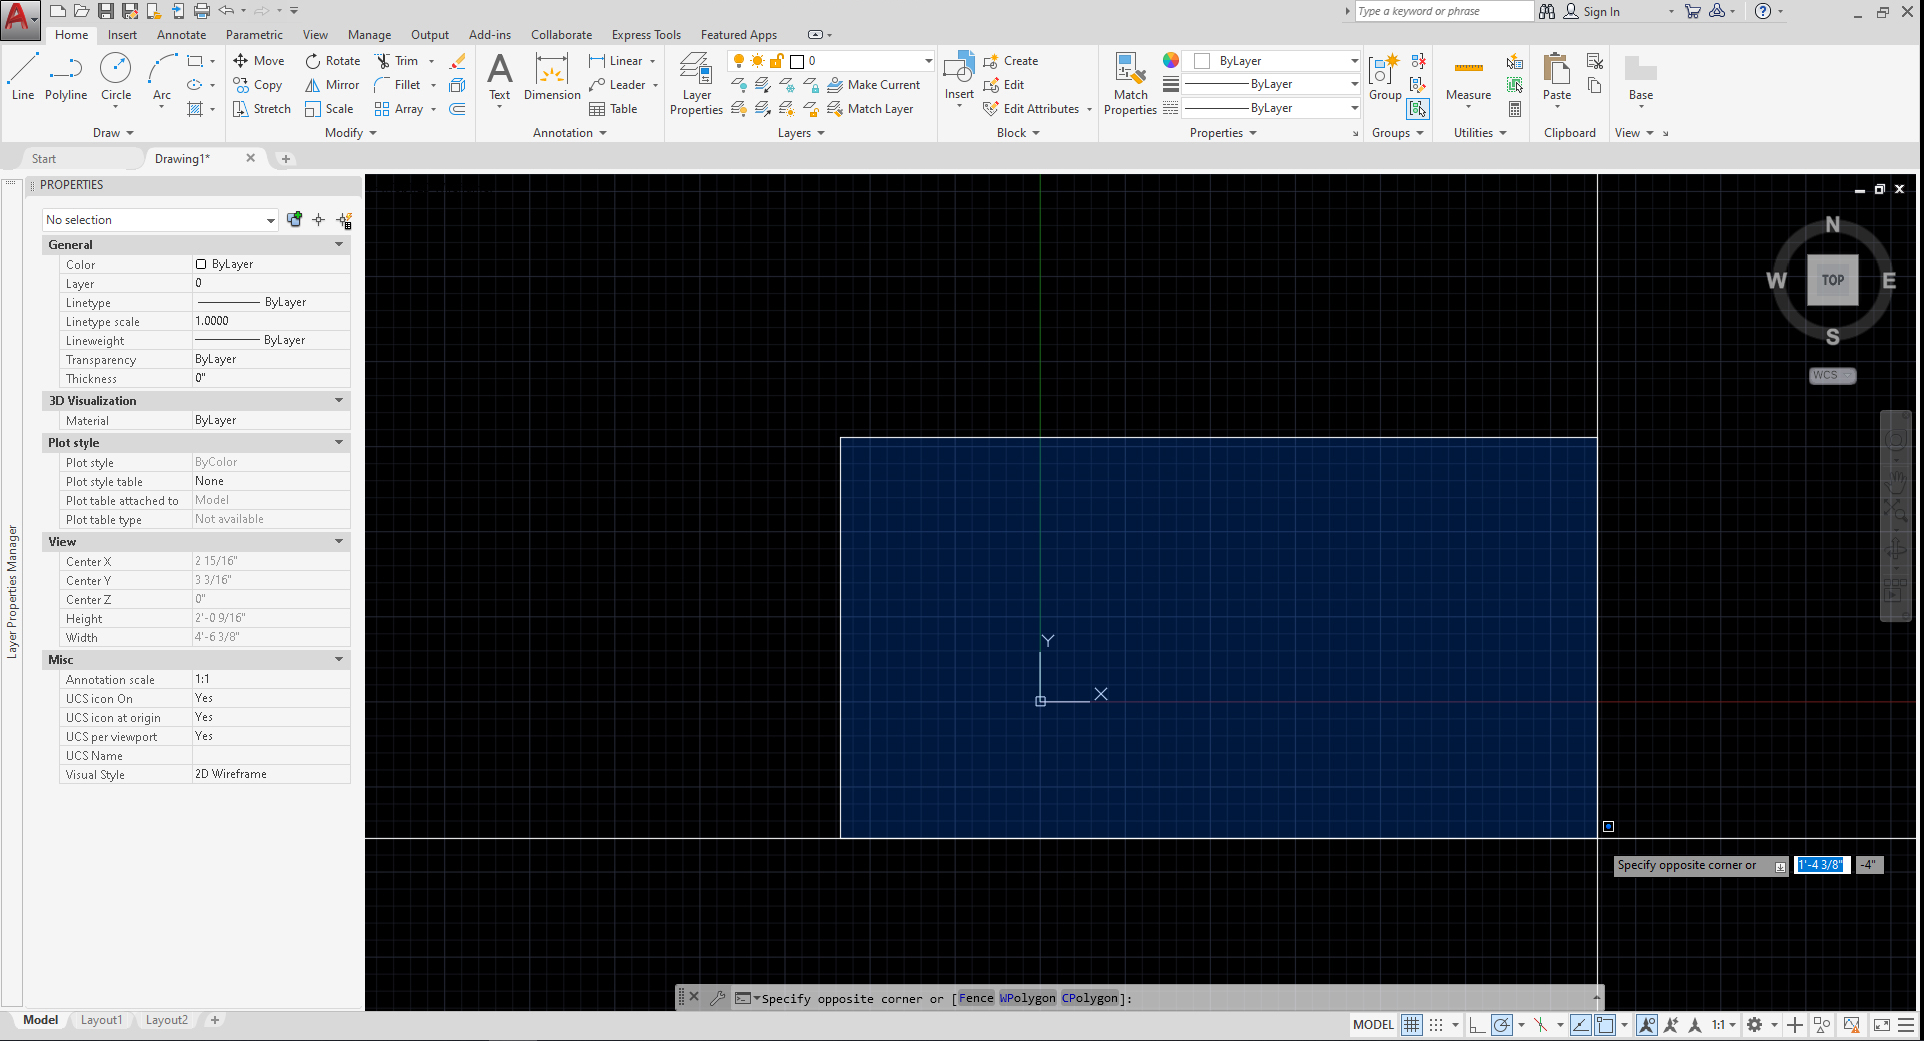 It shows the result of window selection on AutoCAD software. The window selection shows in blue color.